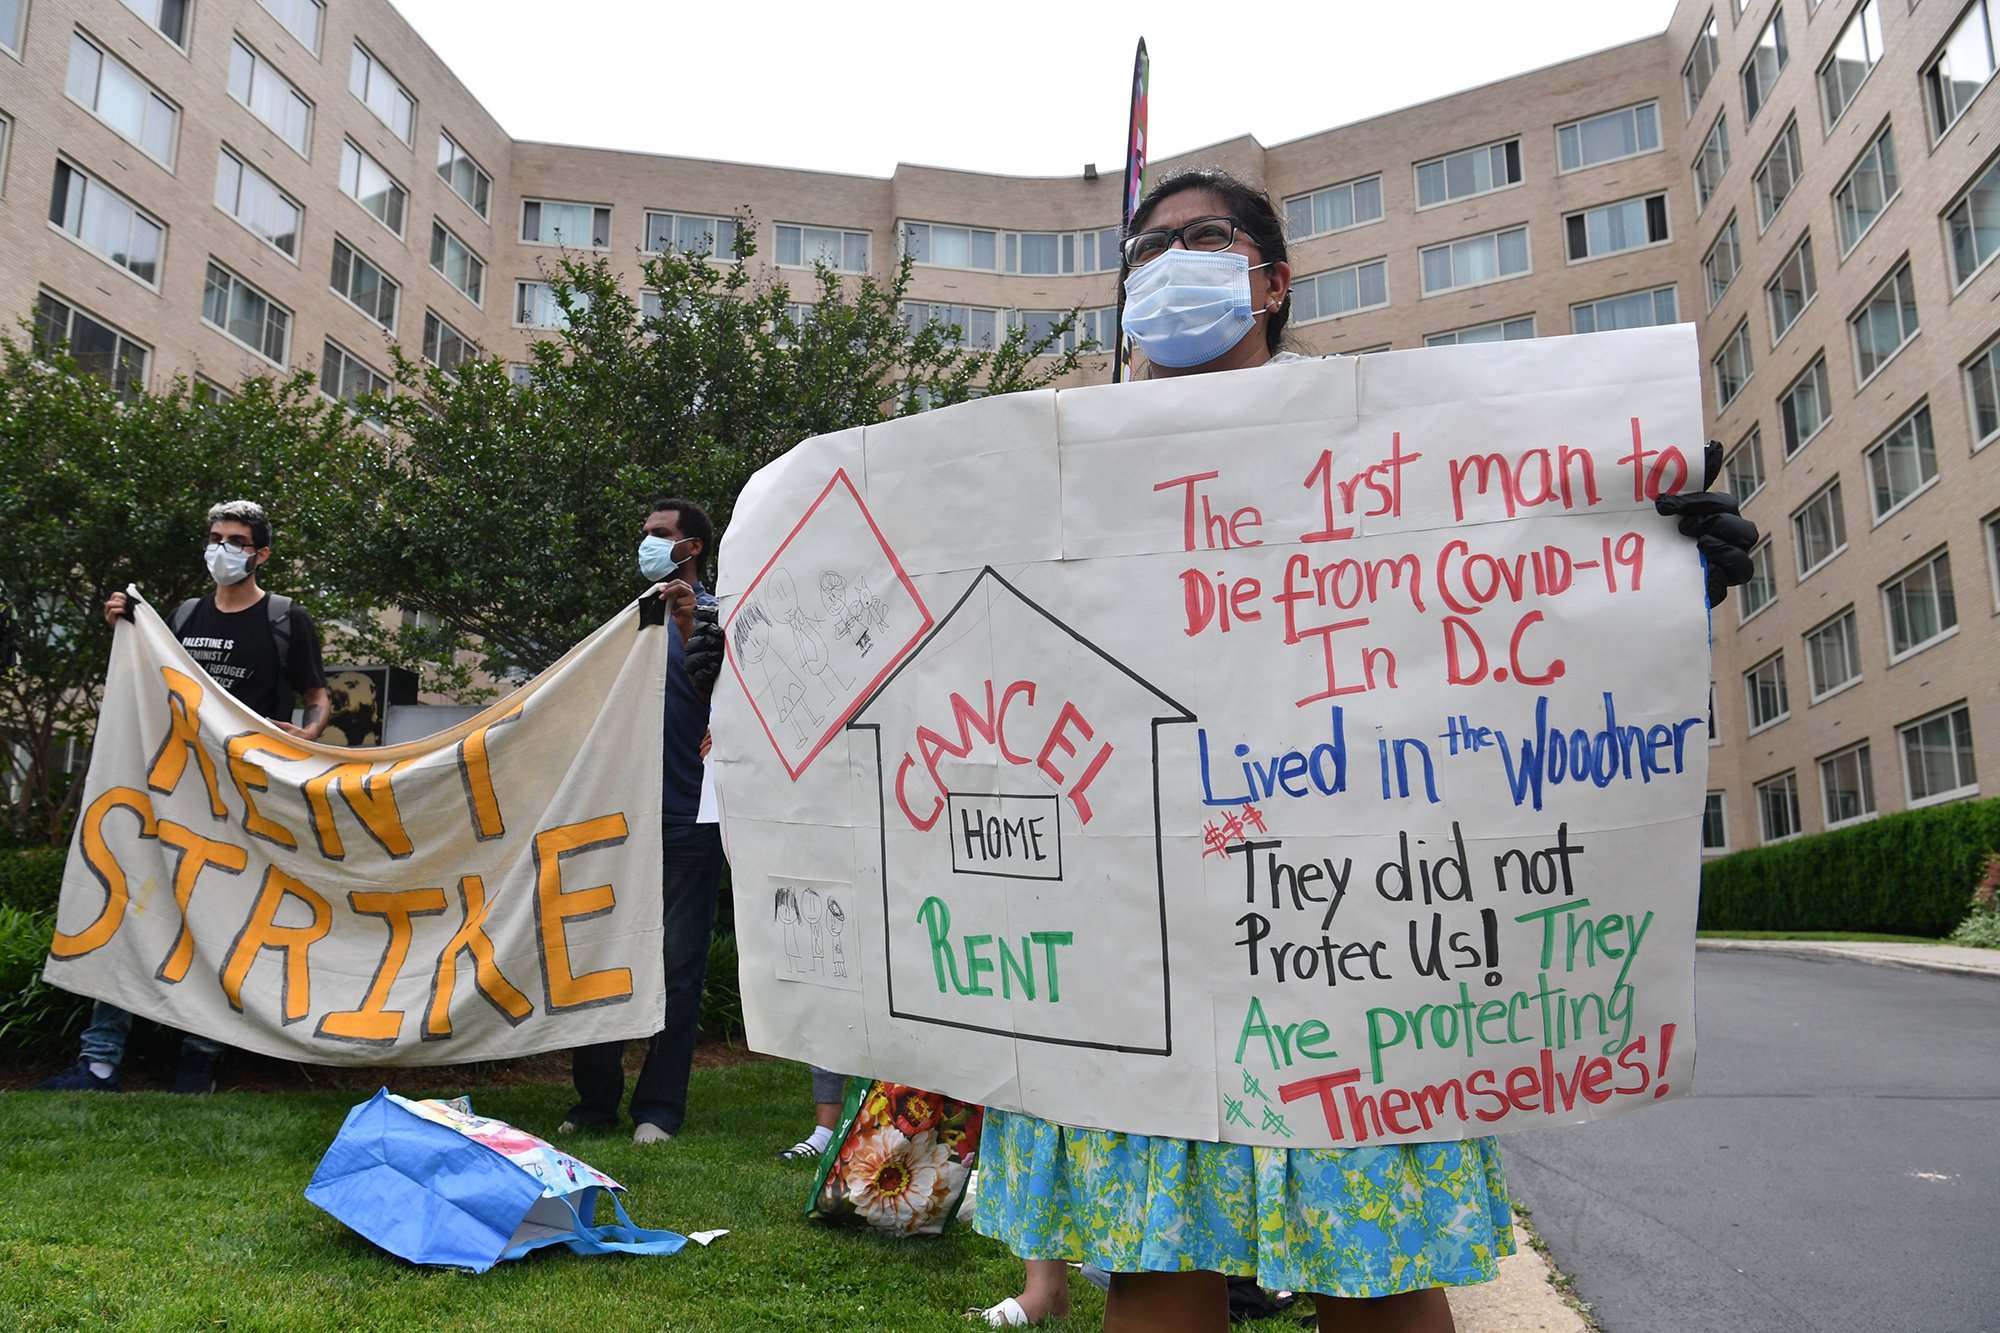 Renters of the Woodner apartment building in Washington, DC, protest to demand their rent be forgiven during the COVID-19 pandemic on May 28, 2020. (NICHOLAS KAMM/AFP via Getty Images)